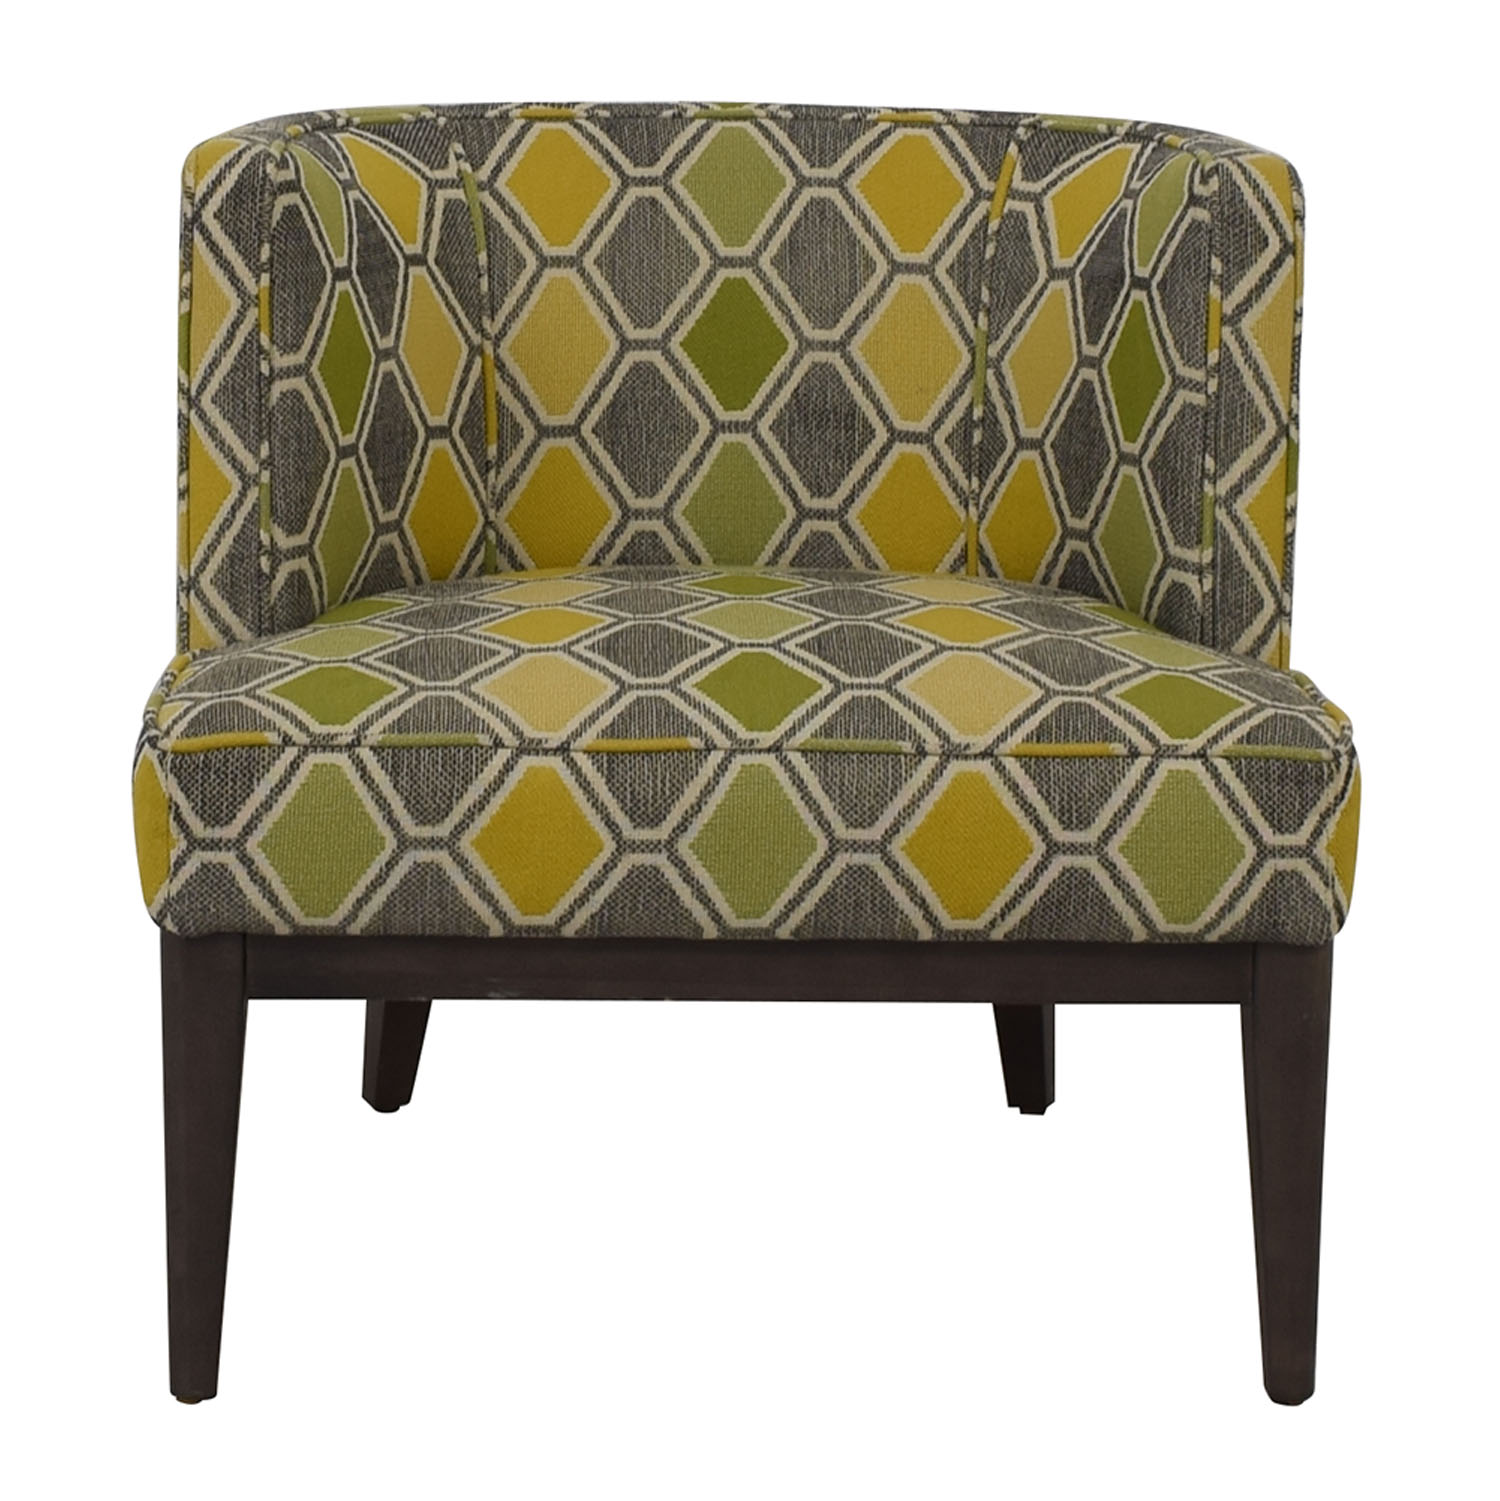 Crate & Barrel Crate & Barrel Grayson Multi-Colored Accent  Chair nj